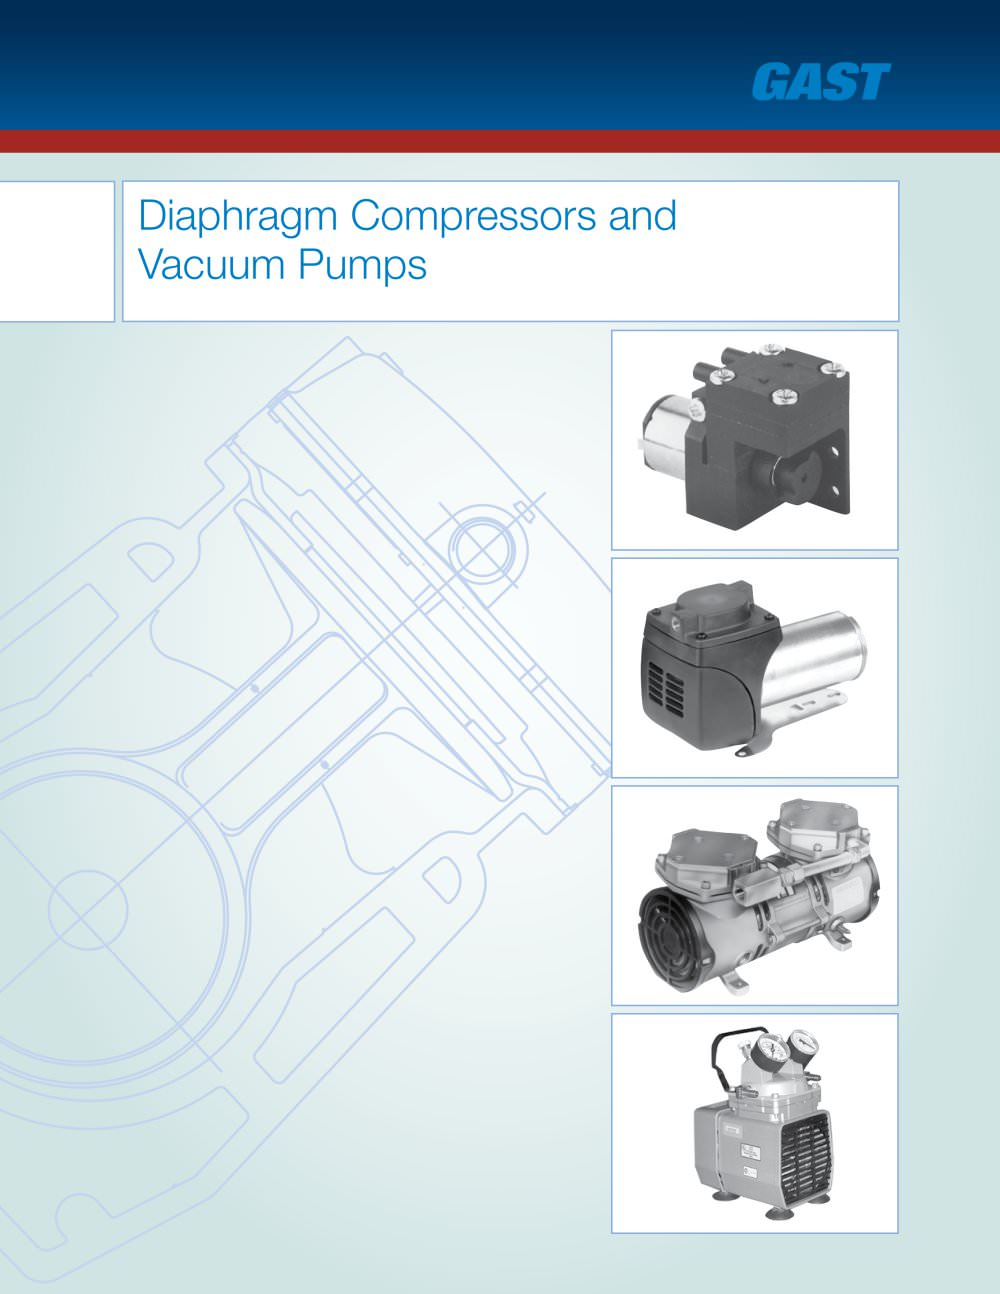 Gast Vacuum Pumps Wiring Diagram Library Pump Diaphragm Compressors And 1 37 Pages